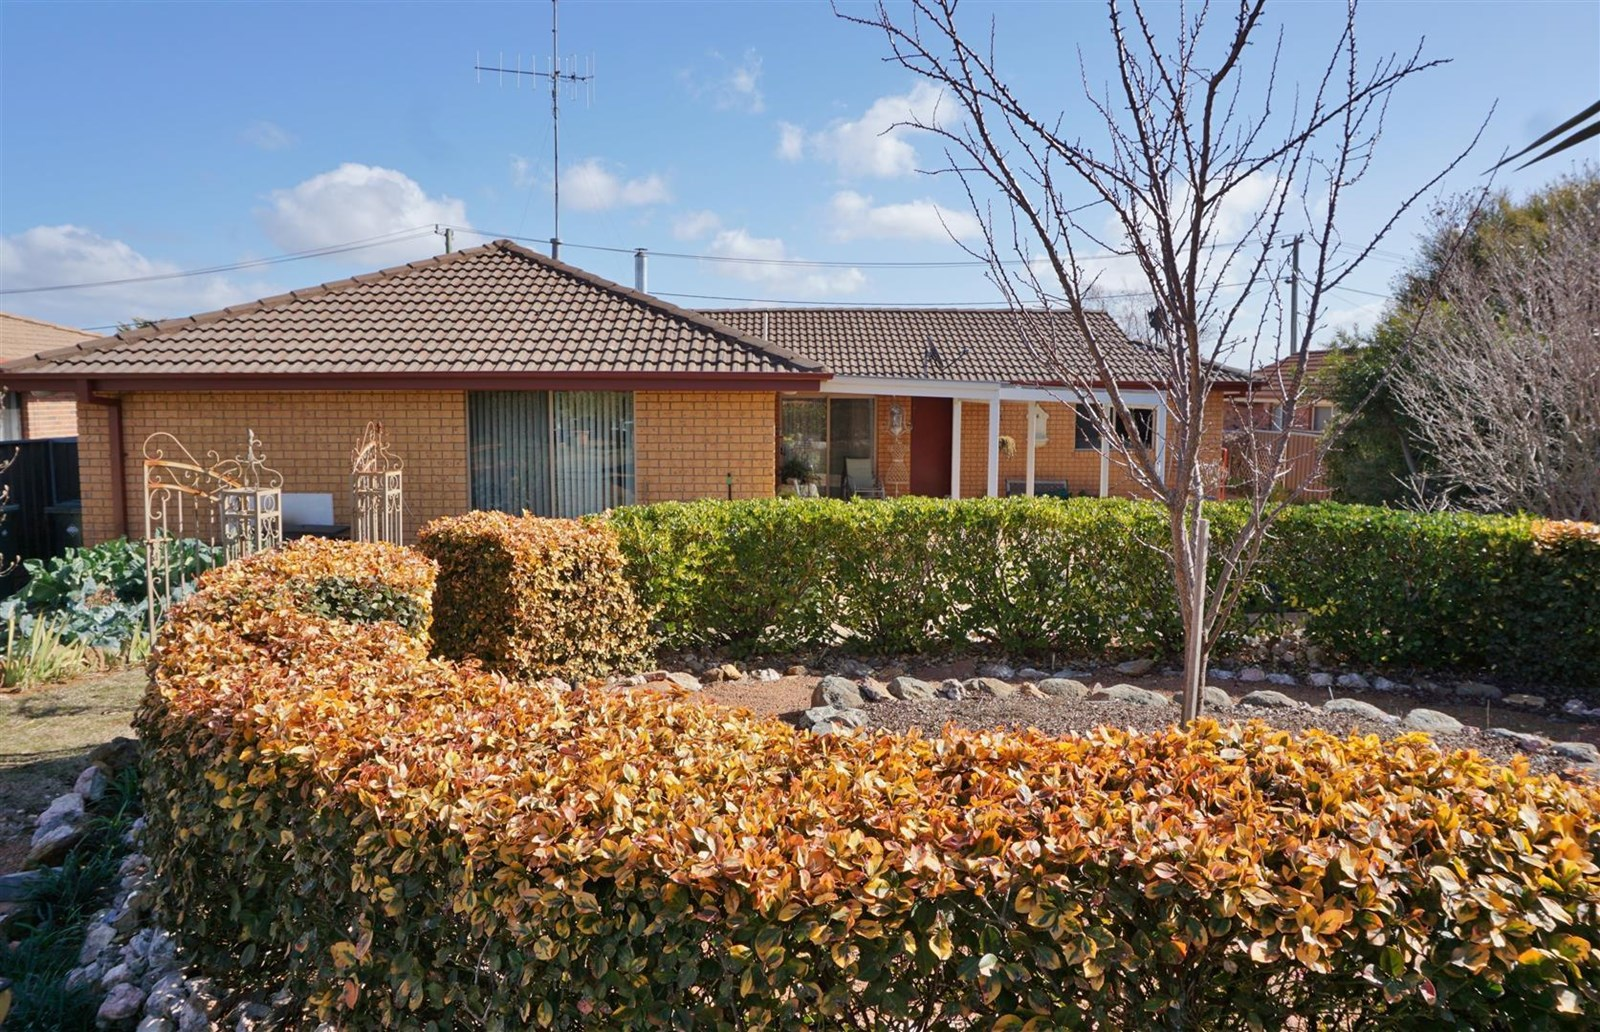 Grand junction road yass nsw house for sale